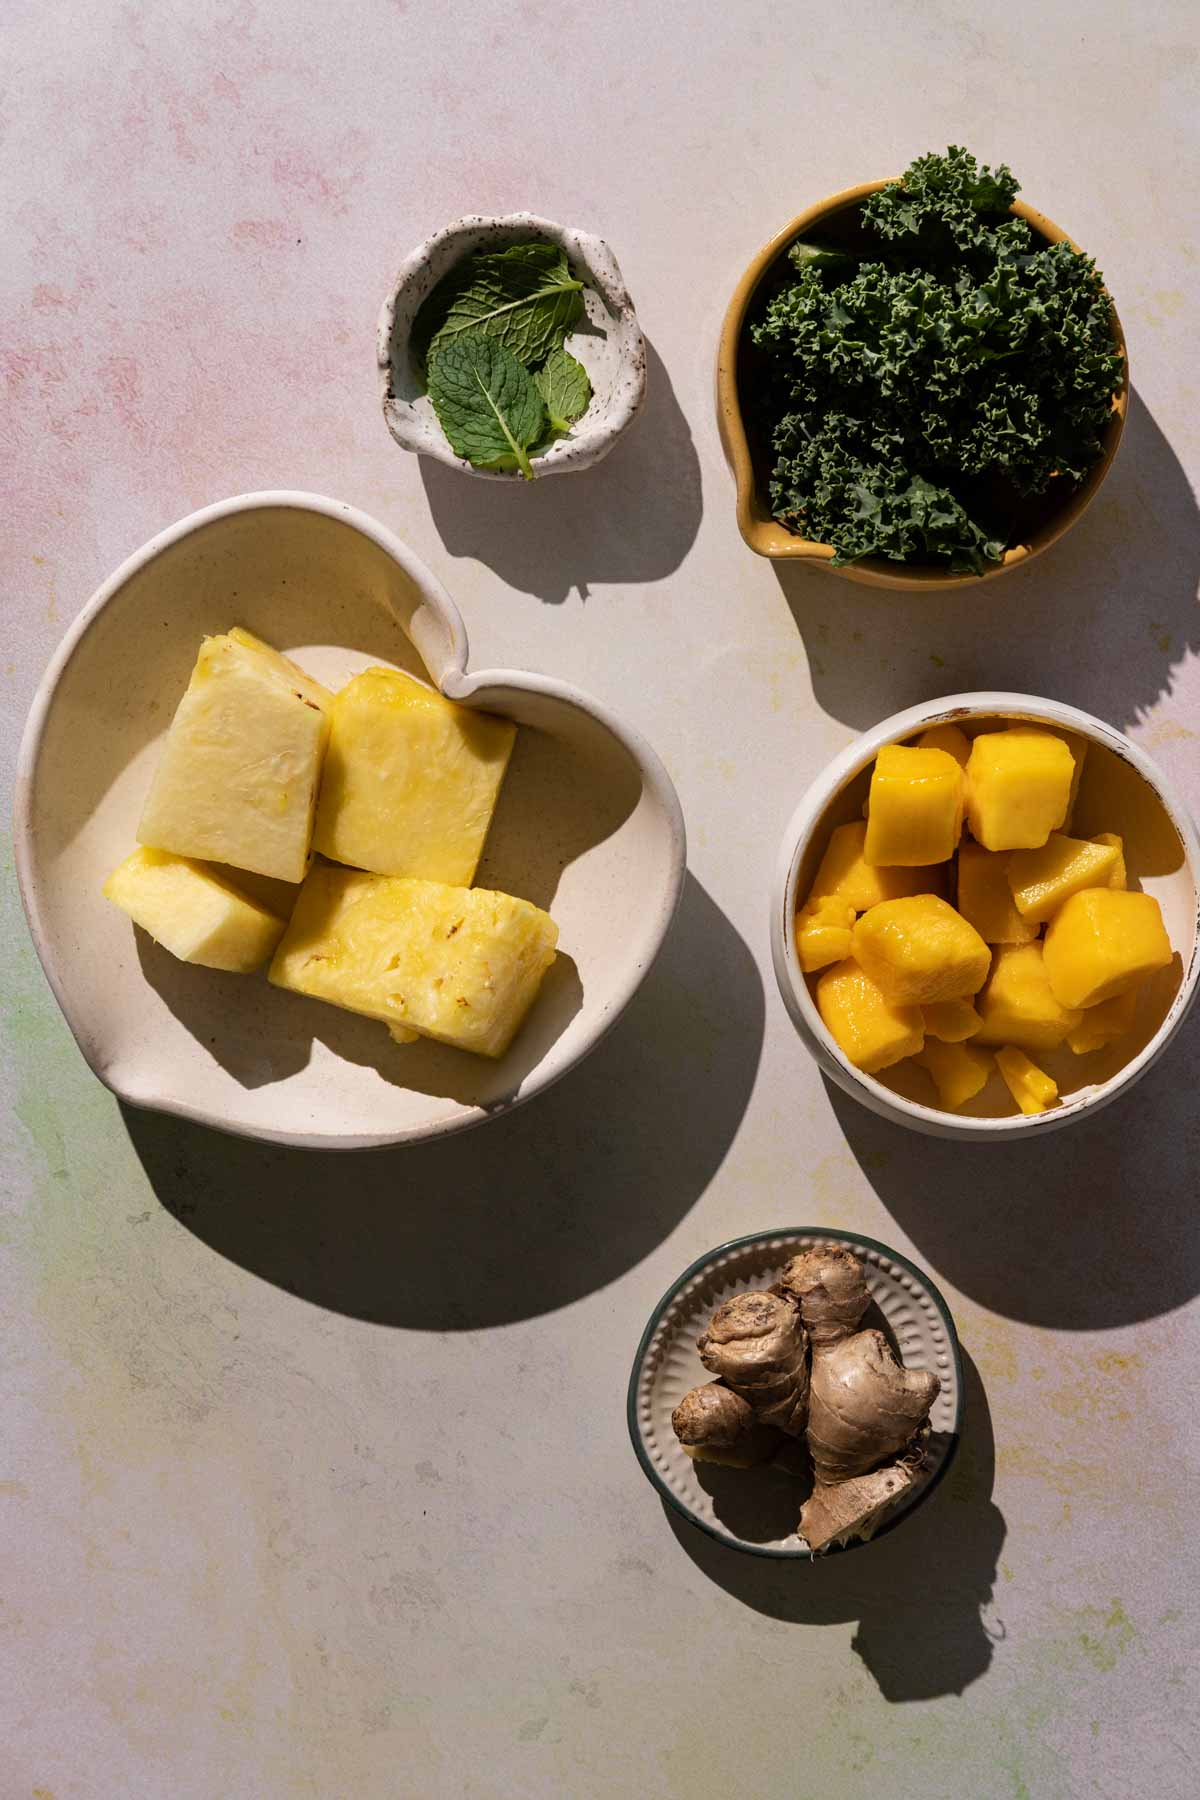 Ingredients for Mango Pineapple Kale smoothie in bowls on a colorful background